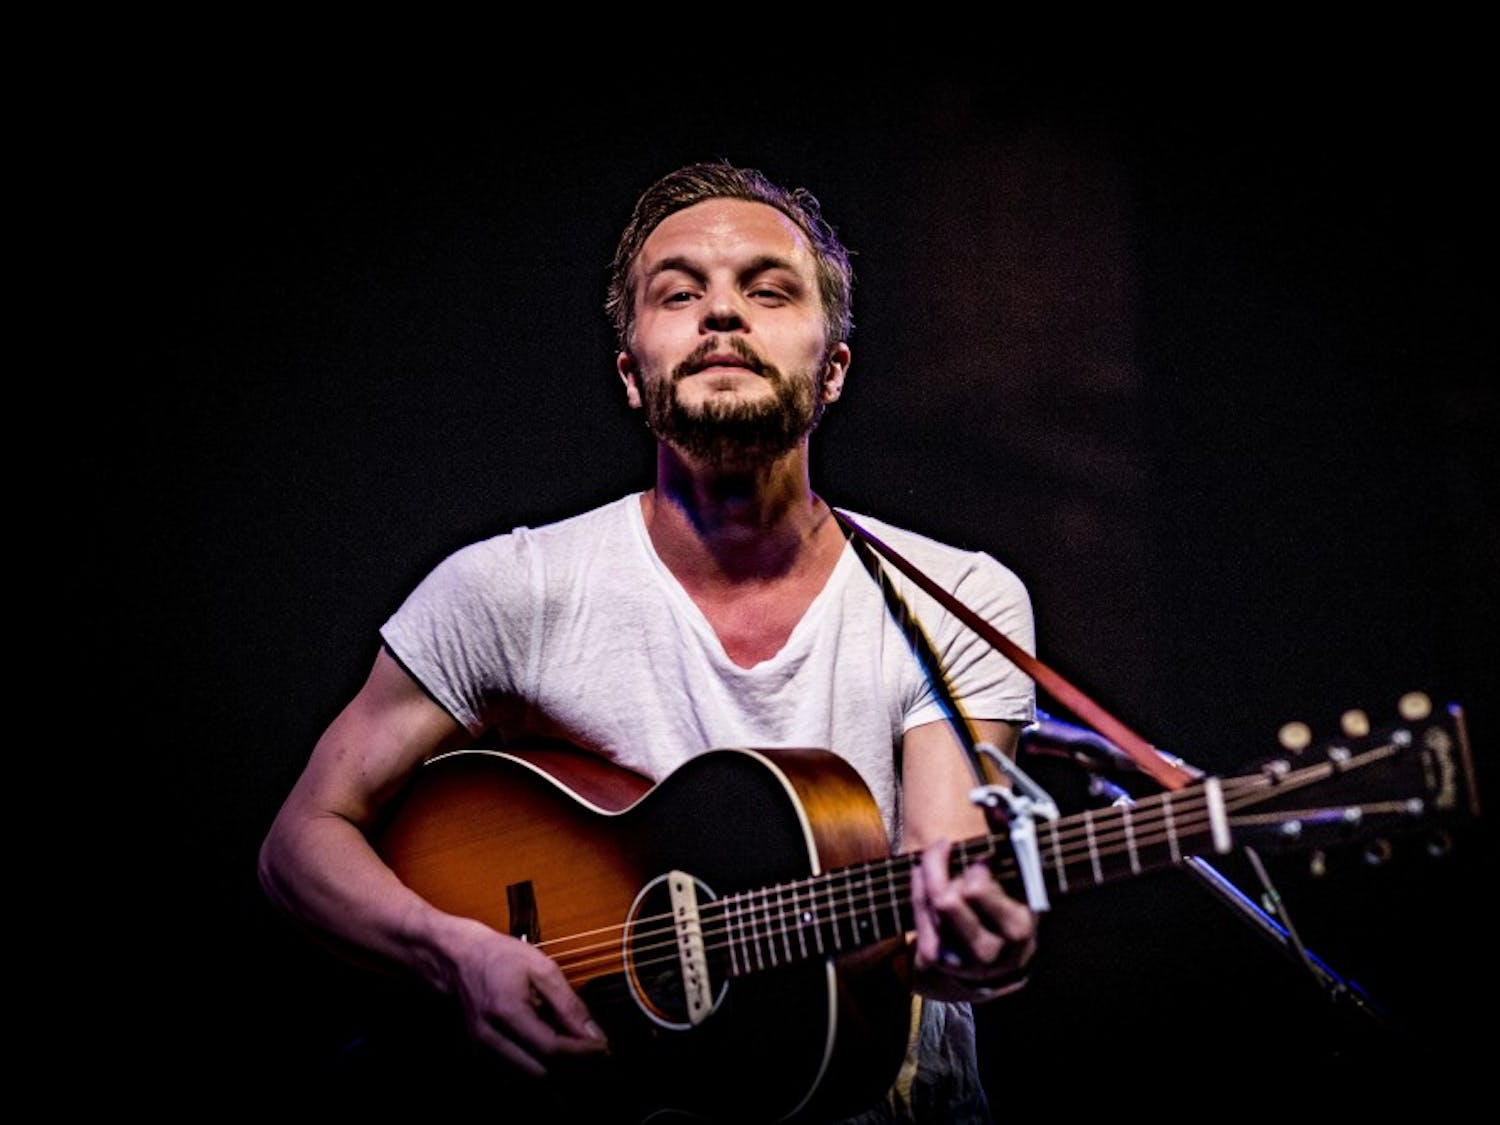 The Tallest Man on Earth played in Madison Tuesday at the Barrymore Theater.